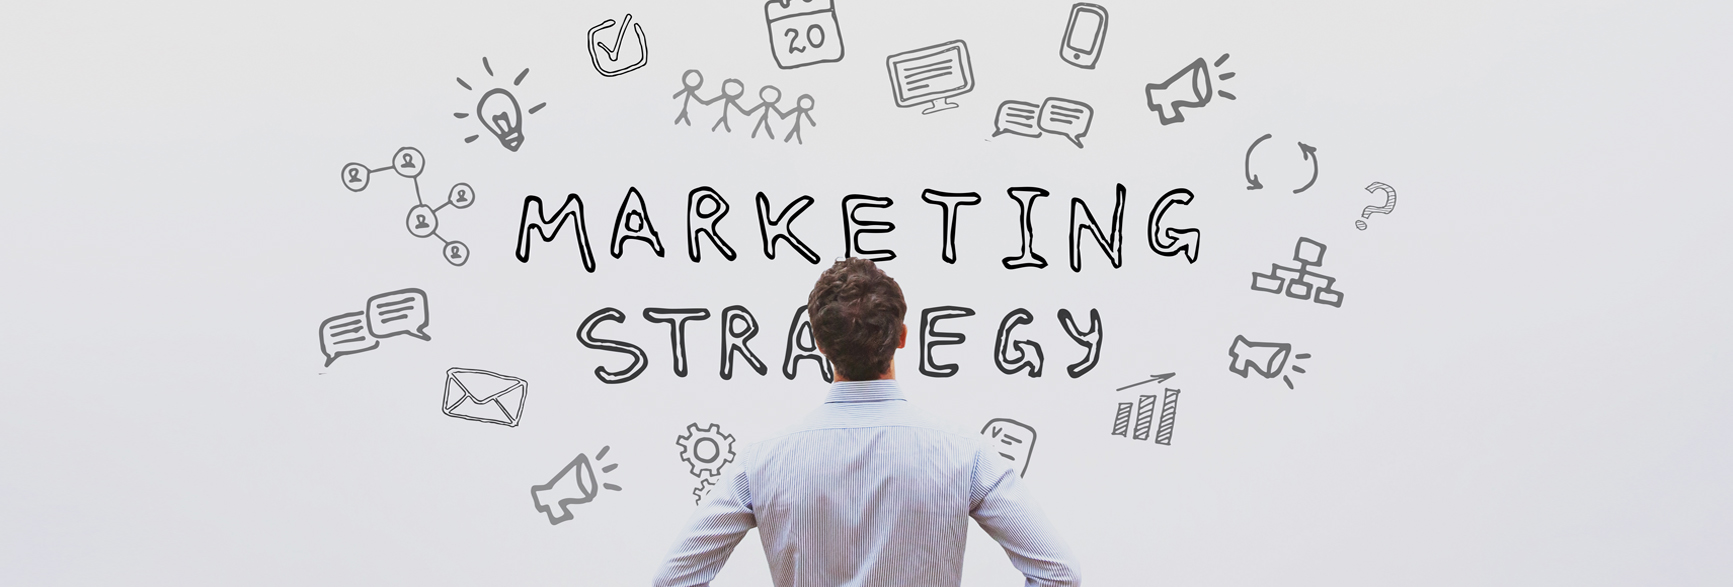 5 basic laws of marketing we should all be following